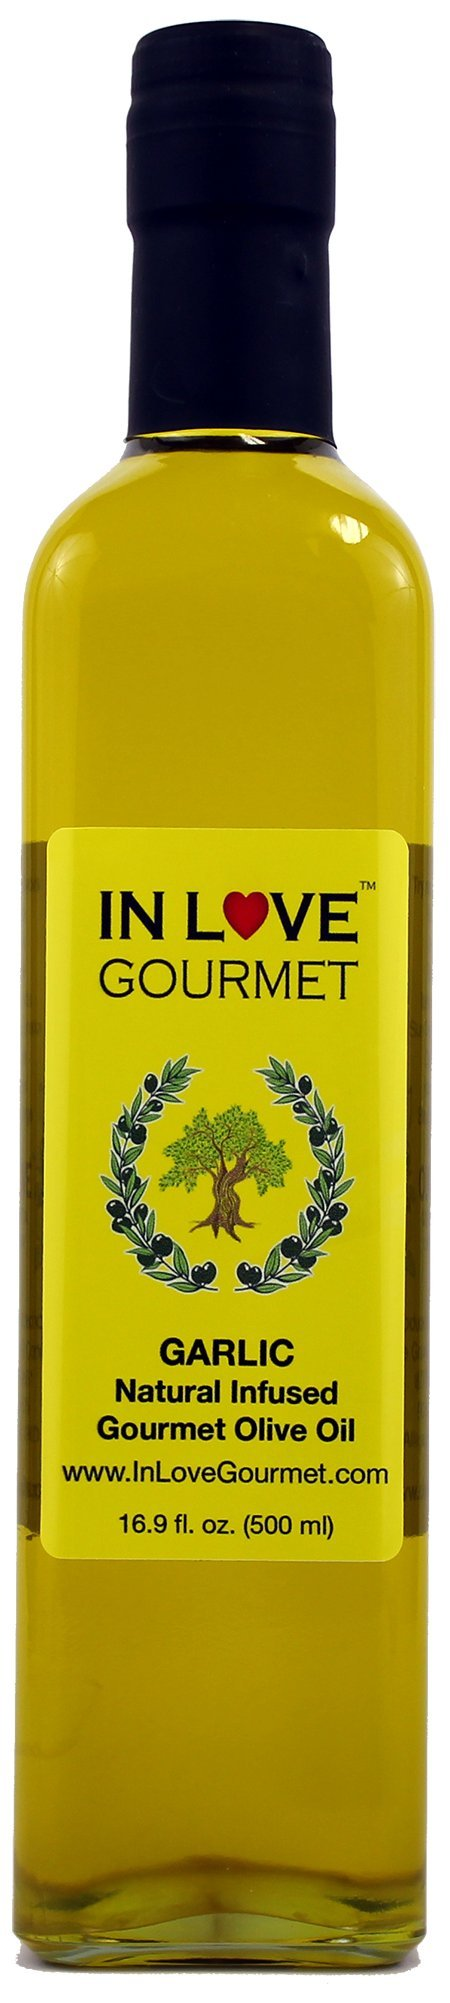 In Love Gourmet Garlic Natural Flavor Infused Gourmet Olive Oil 500ML/16.9oz Great Tossed with Pasta, on Salads, as a Sandwich Spread, for Bread Dipping and in Marinades.